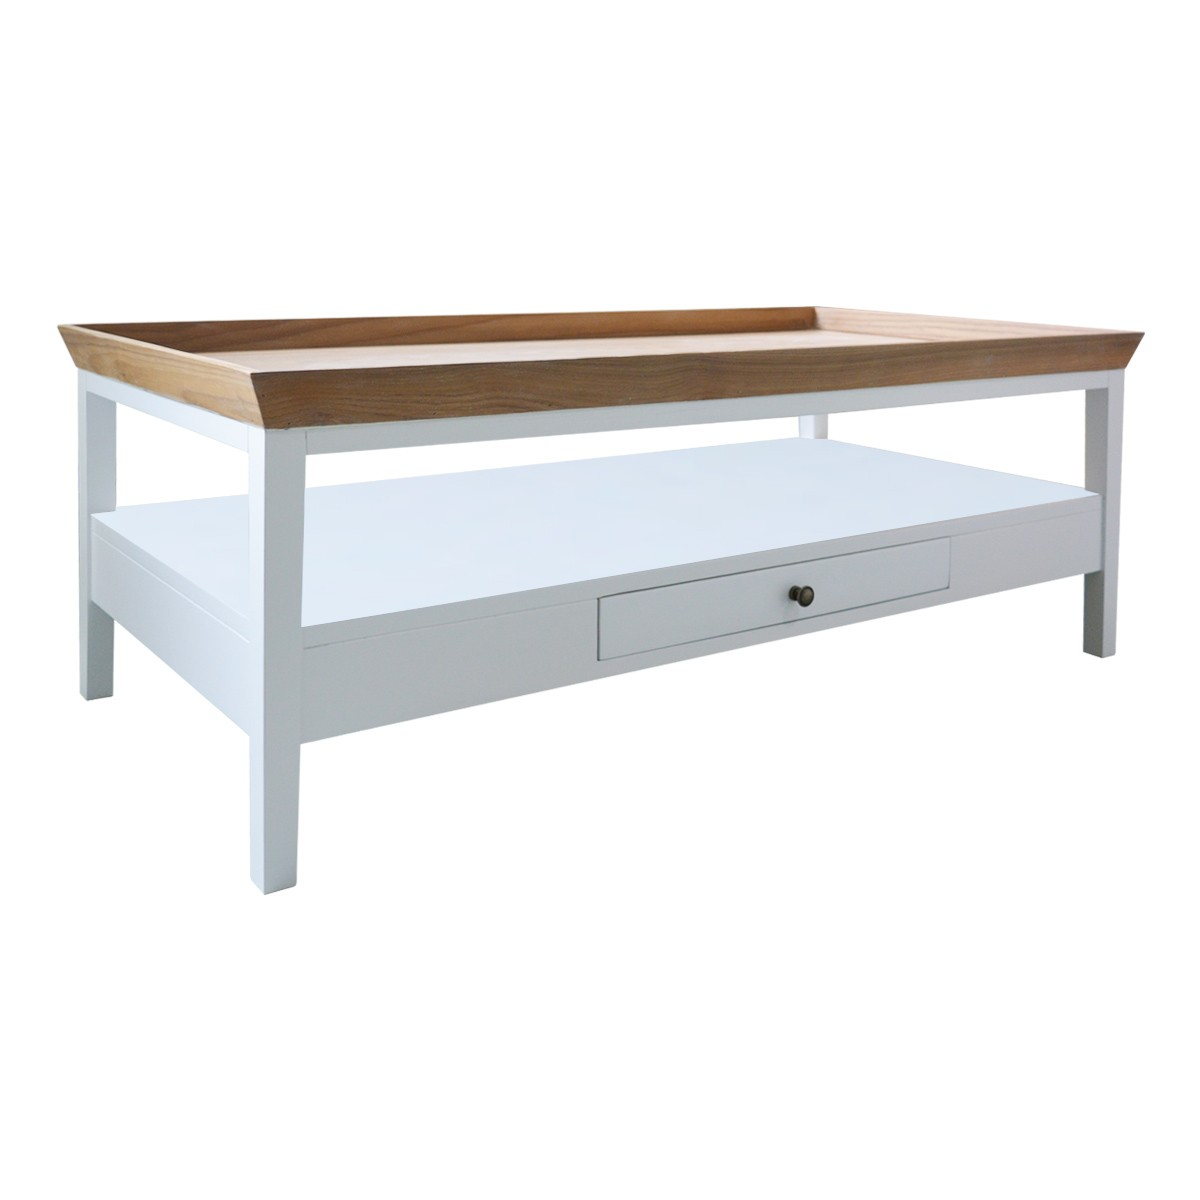 White Coffee Table Tray: Hamptons Halifax Furniture White Coffee Table With Natural